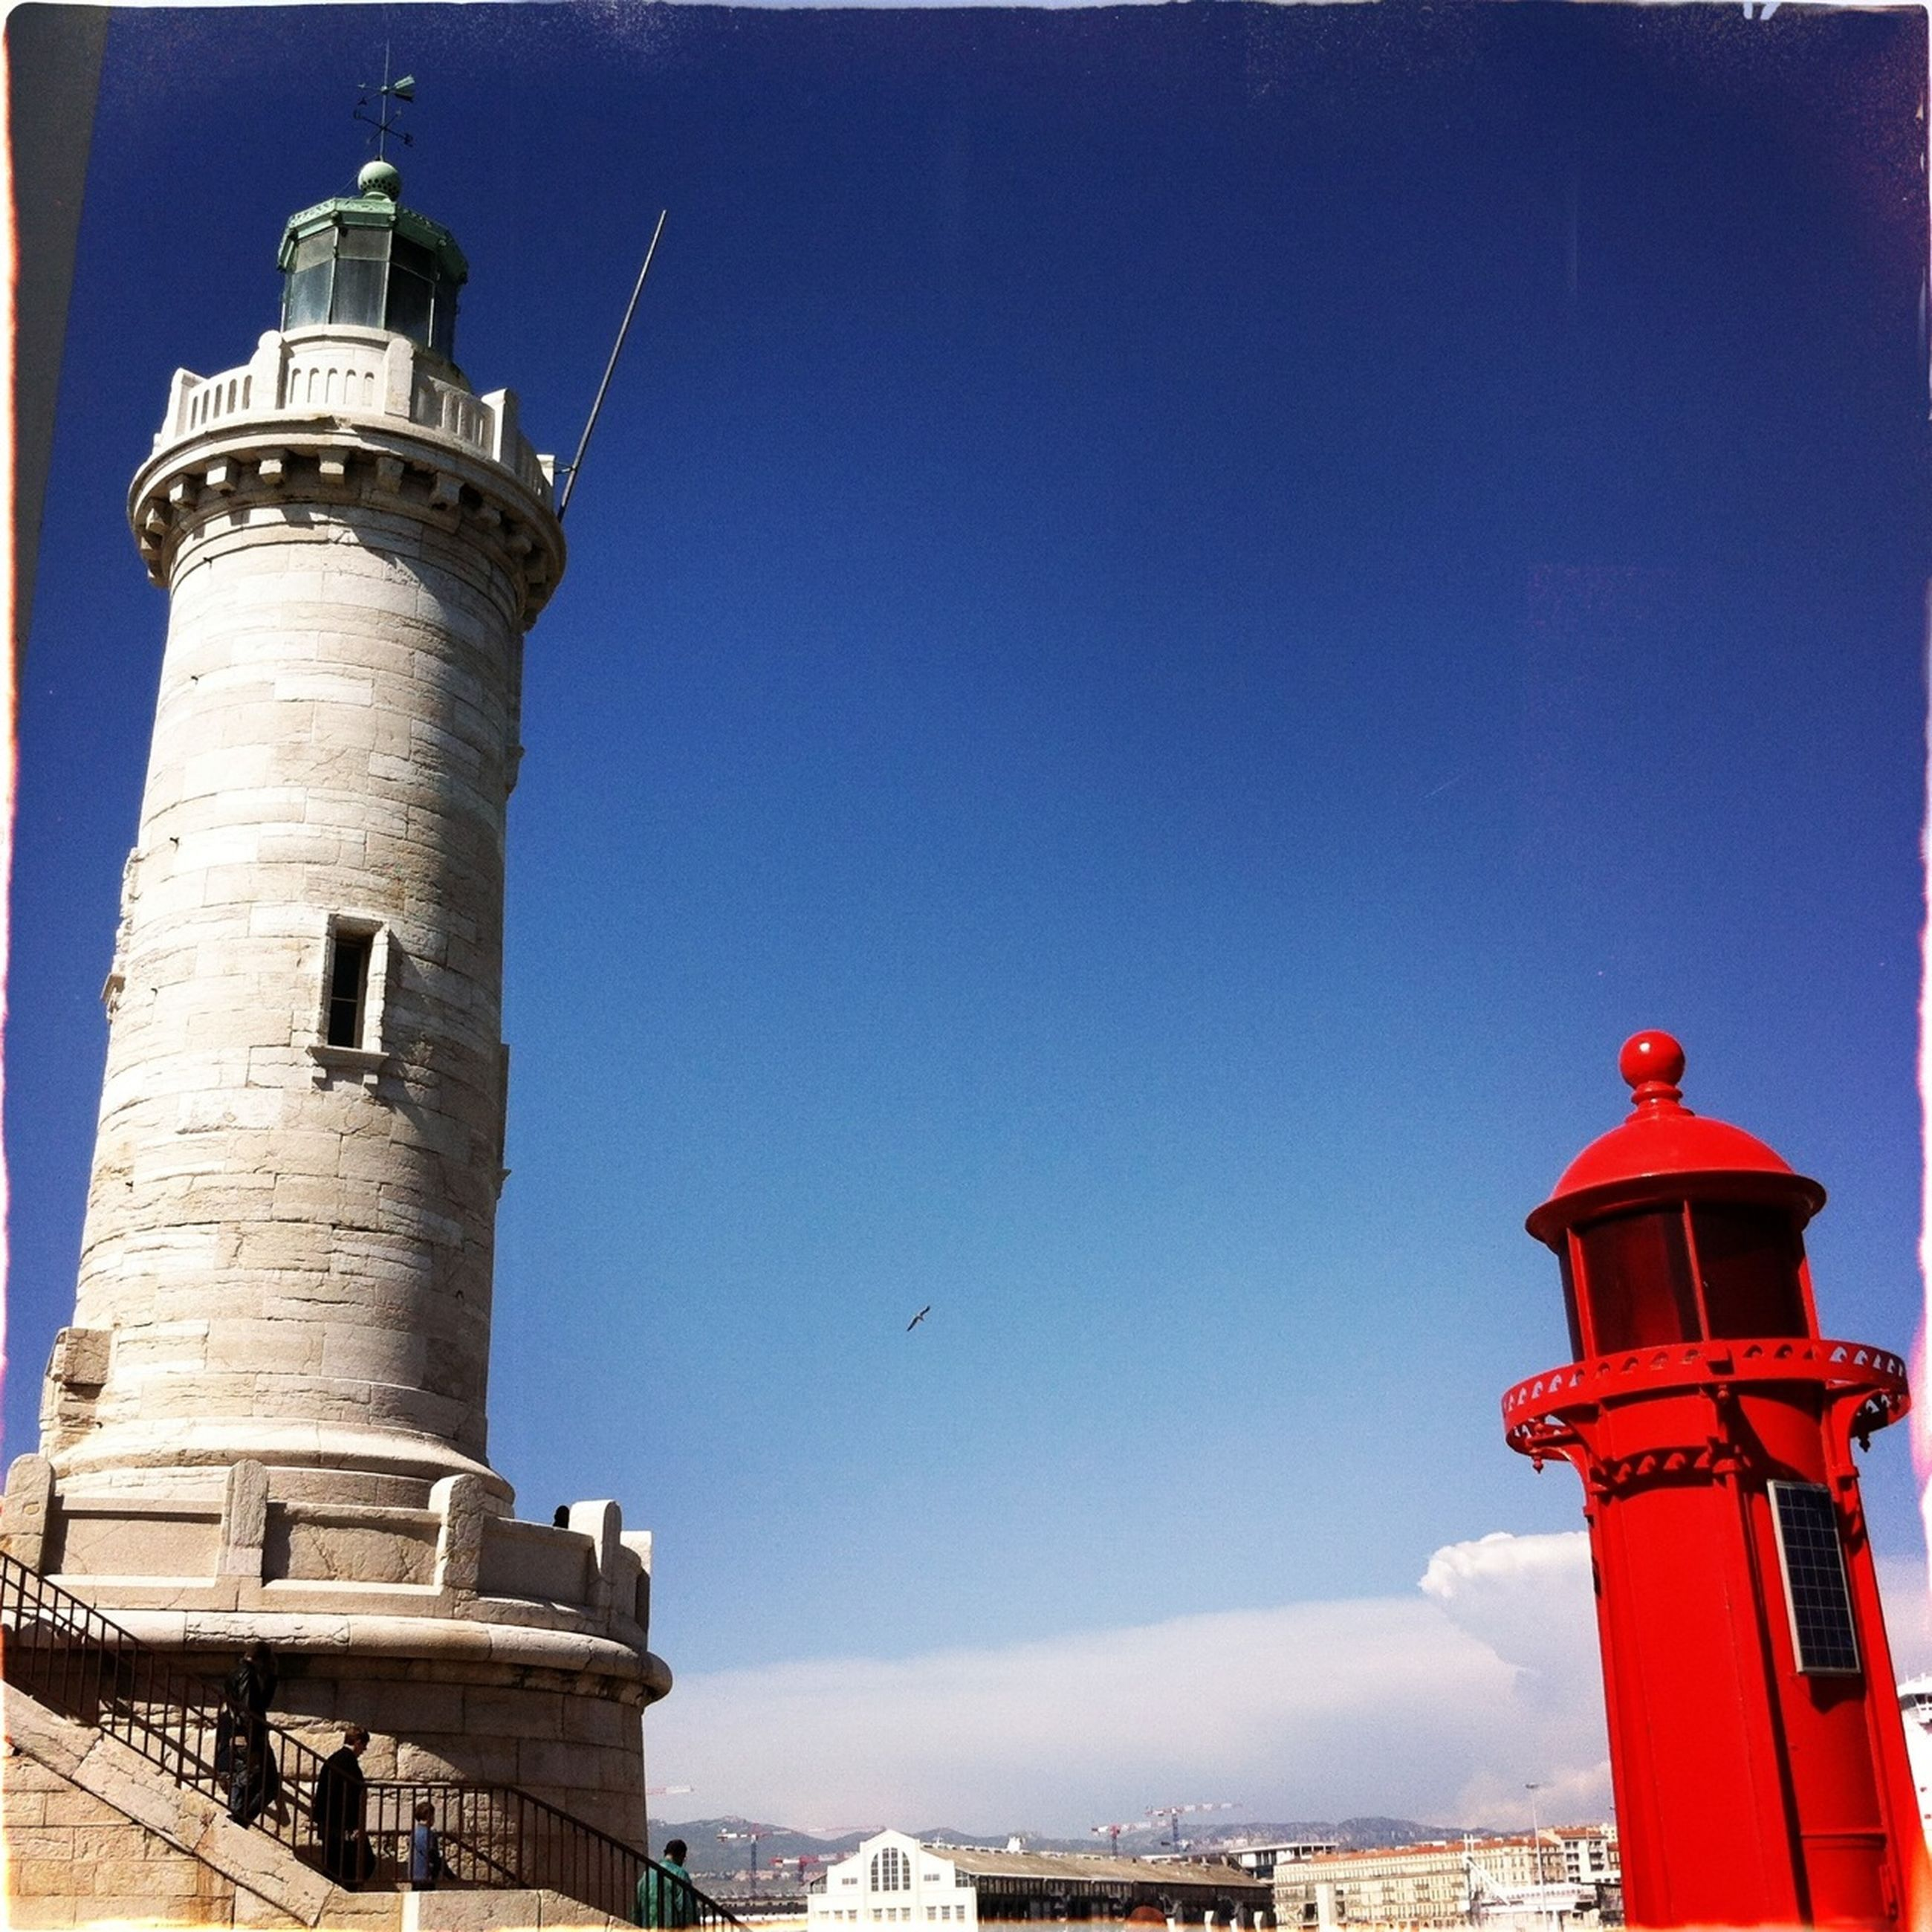 architecture, built structure, building exterior, lighthouse, clear sky, low angle view, guidance, red, tower, blue, copy space, protection, direction, safety, security, outdoors, day, no people, travel destinations, sky